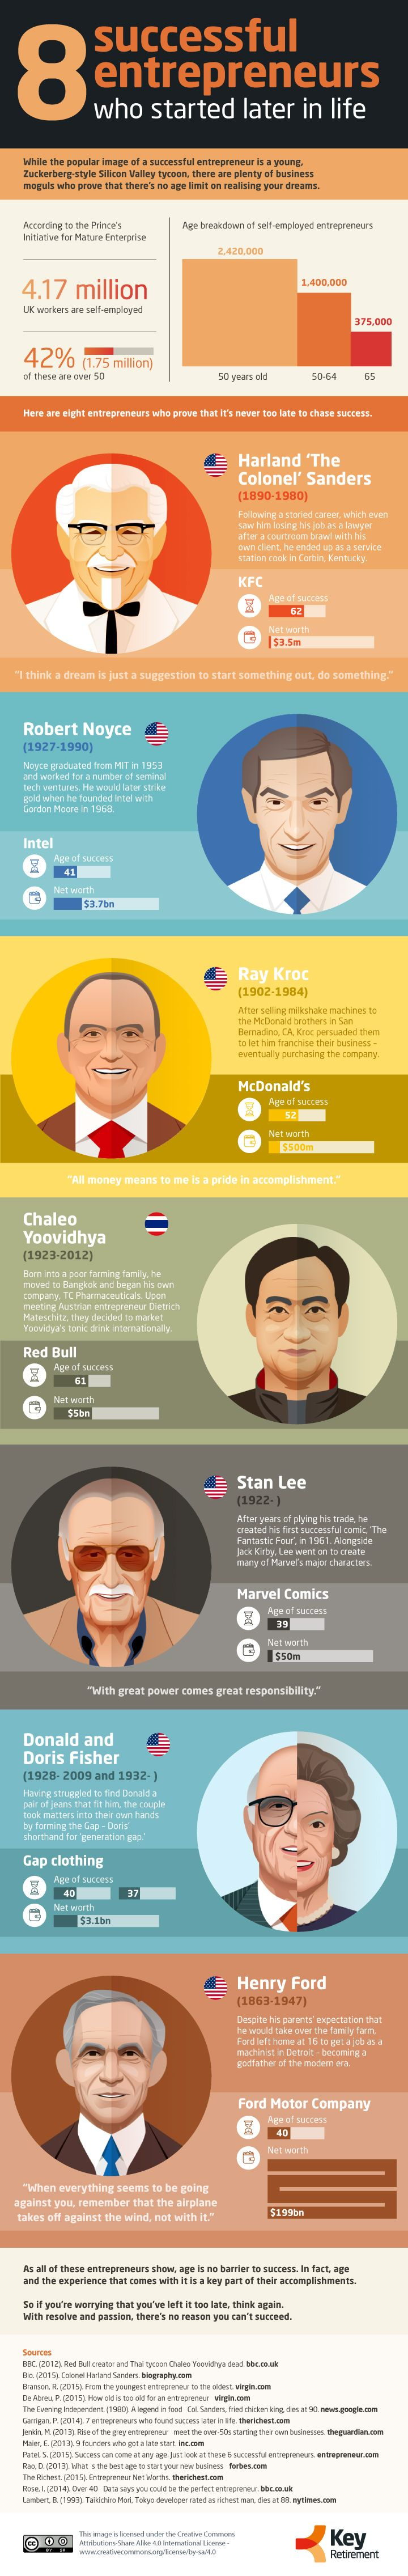 8 Successful Entrepreneurs Who Started Late in Life #infographic #Entrepreneur #SuccessStories